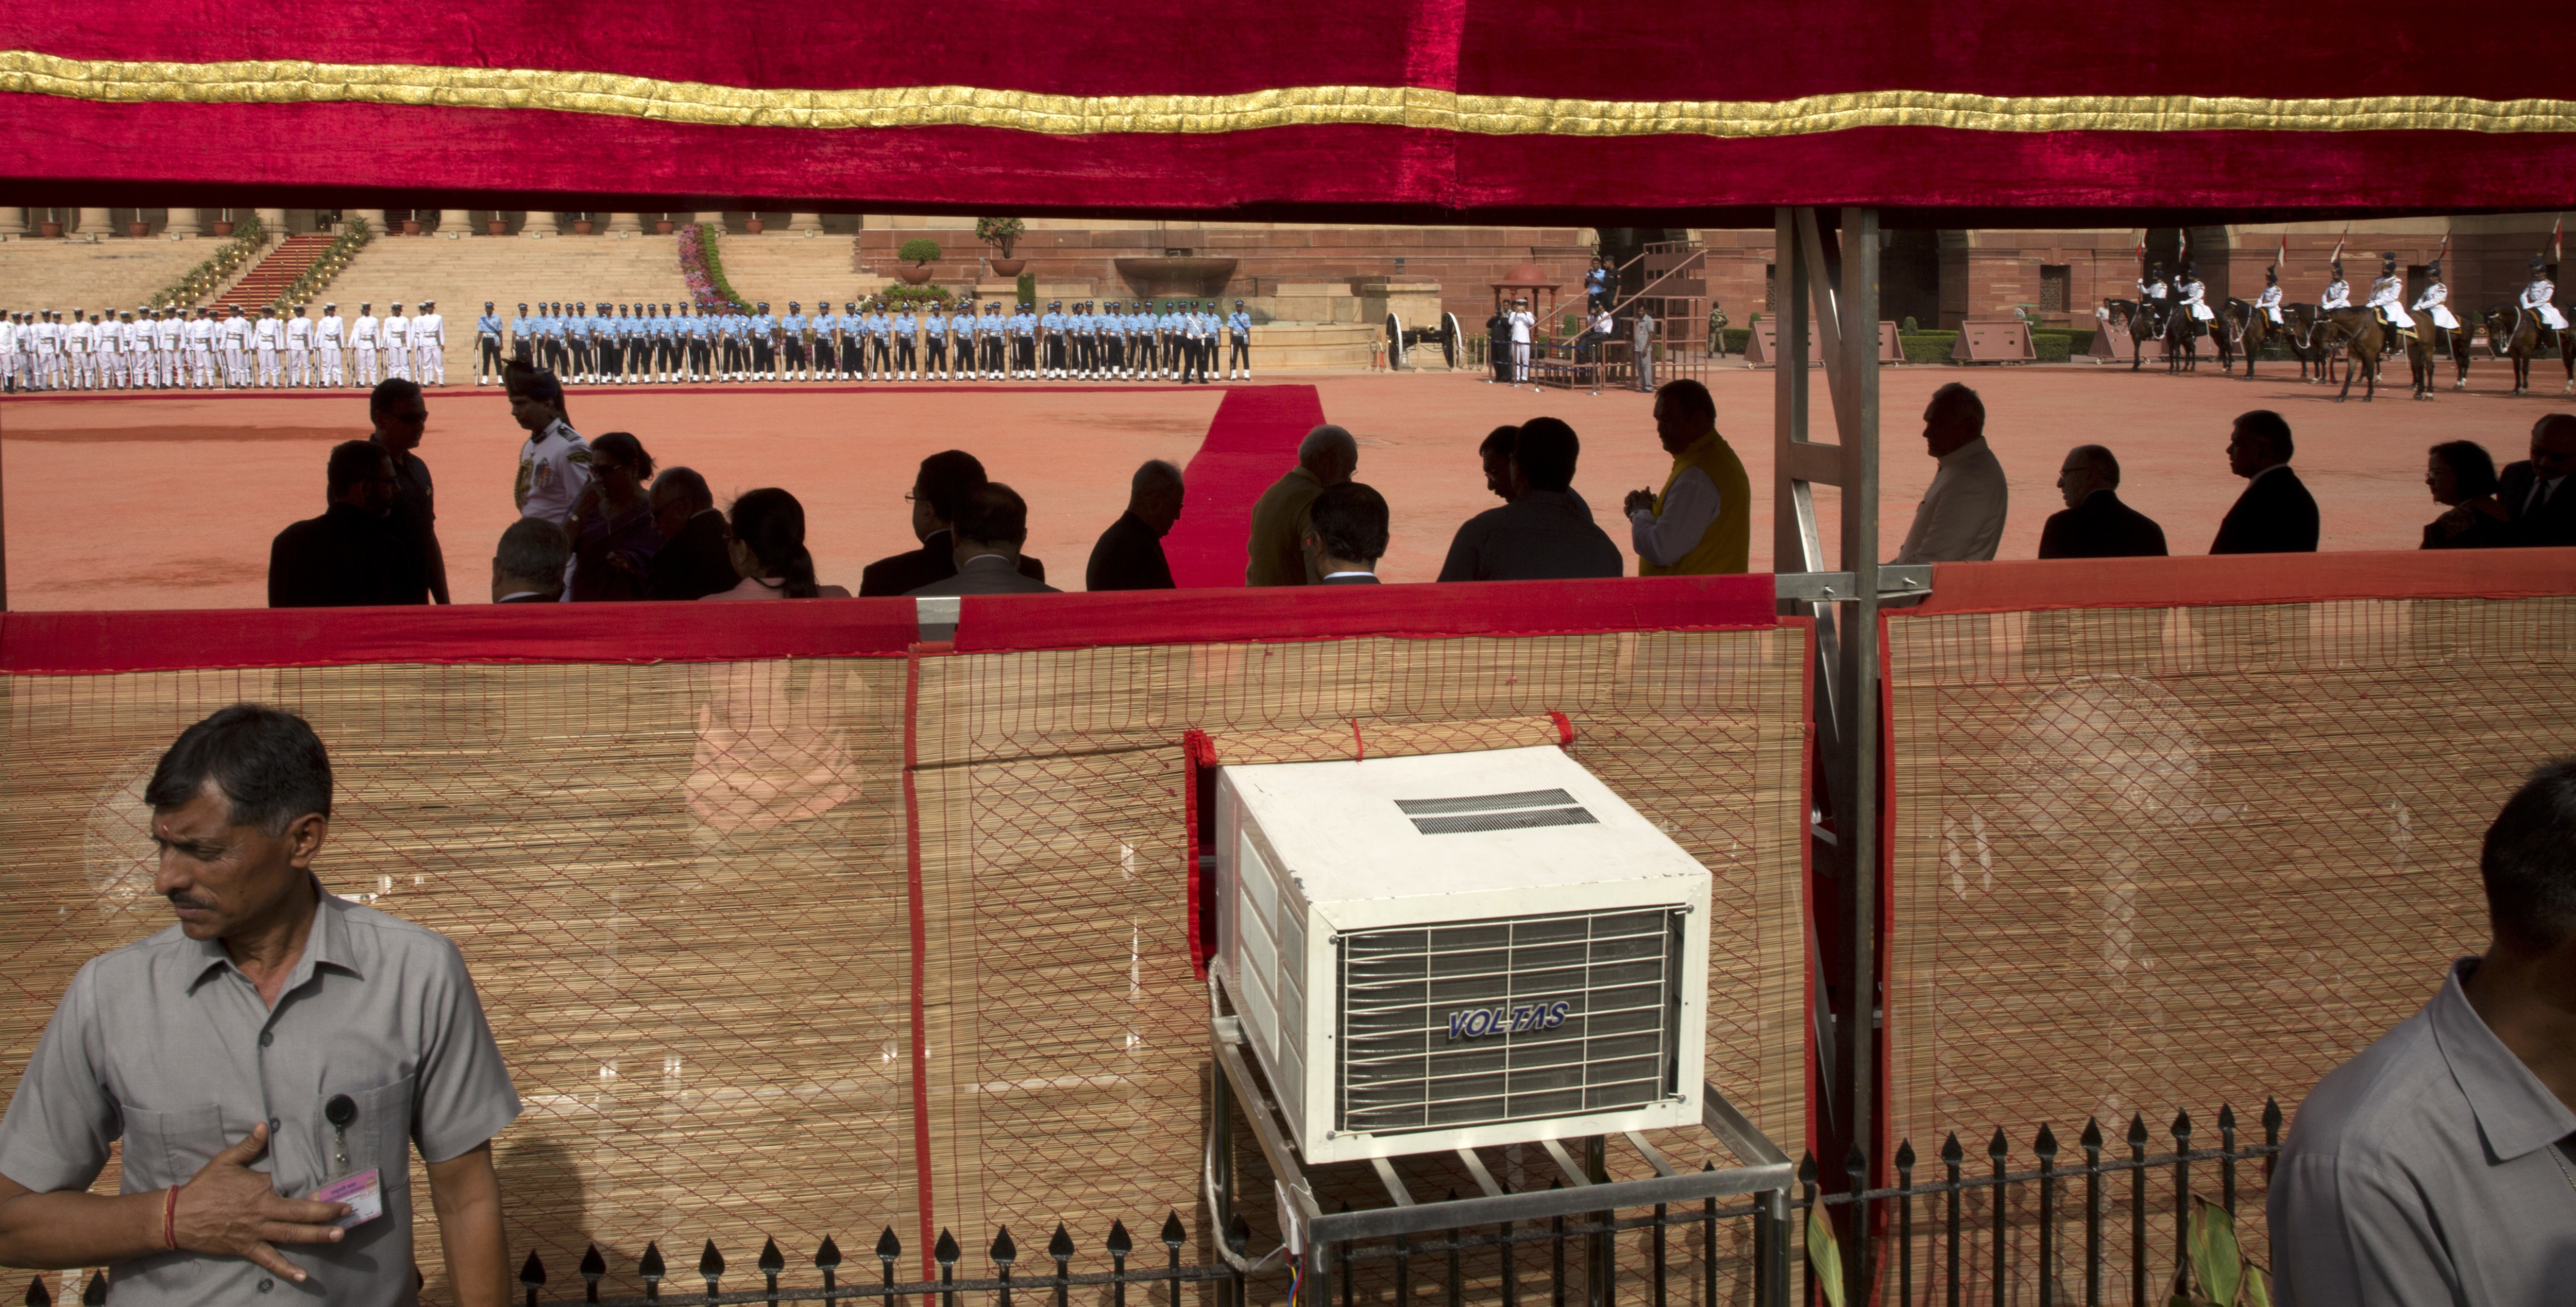 Sales of air conditioners are going way up in places like India, Indonesia, and the Middle East, all hot regions where A/C is still rare.